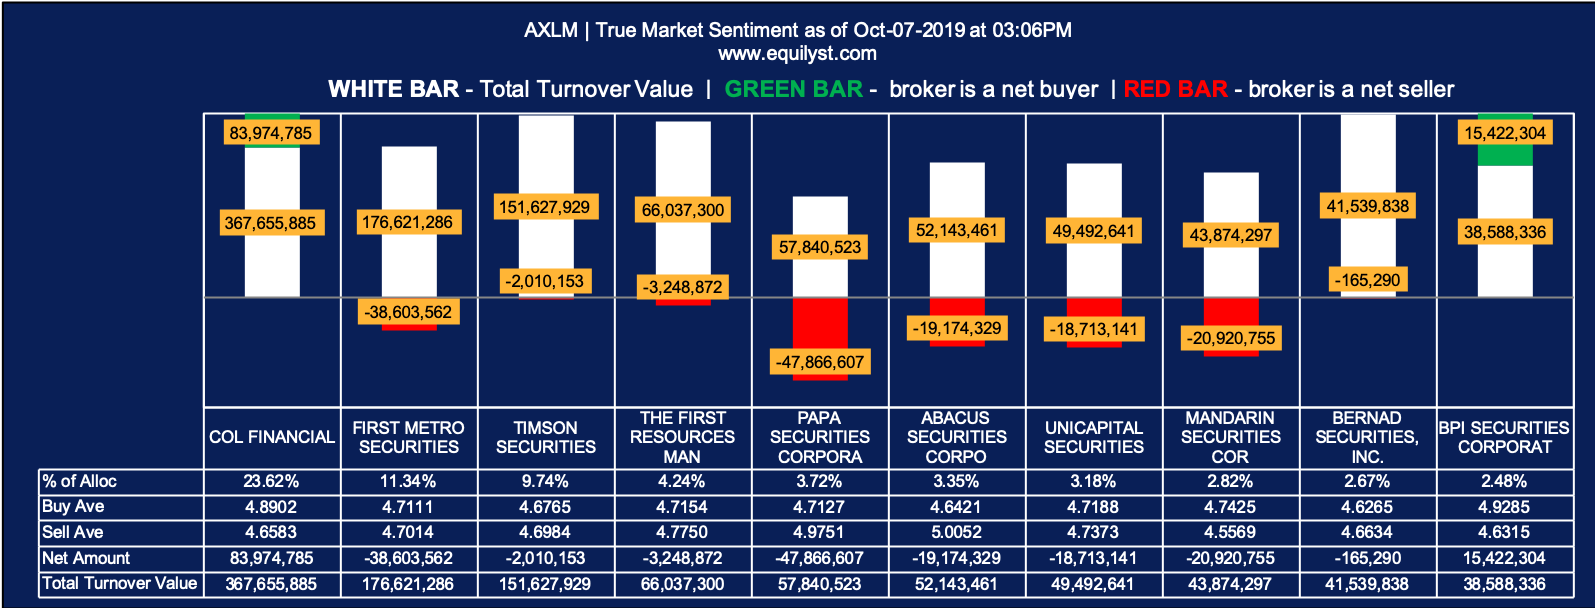 Axelum Resources Corp (AXLM) - True Market Sentiment 1 - 10.7.2019